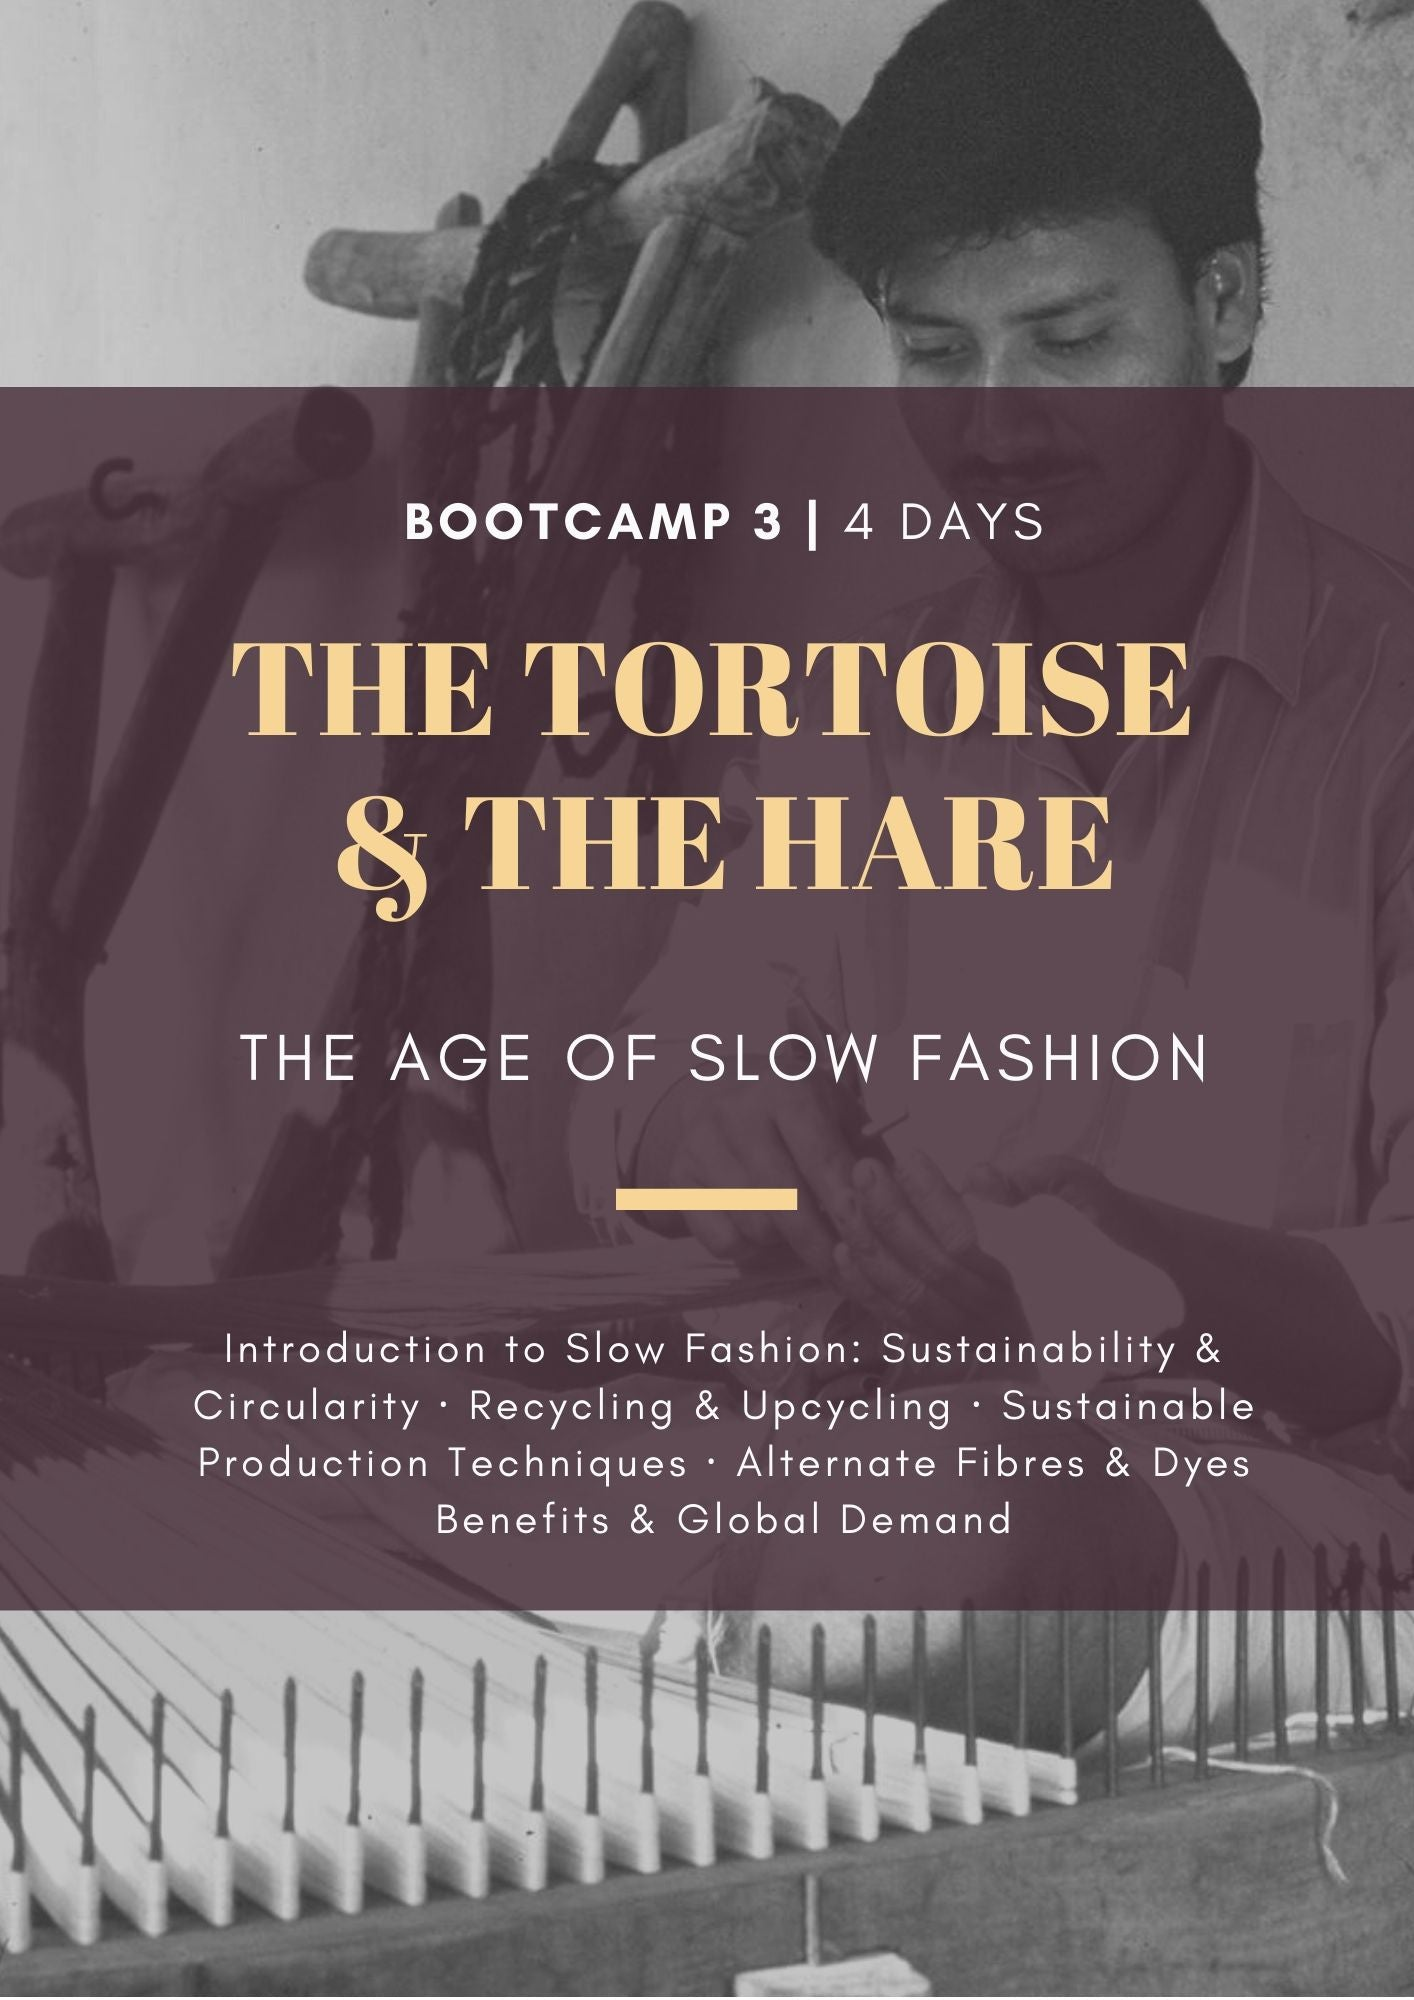 BOOT CAMP 3 | Hyderabad | 4 Days | The Tortoise & The Hare: The Age of Slow Fashion